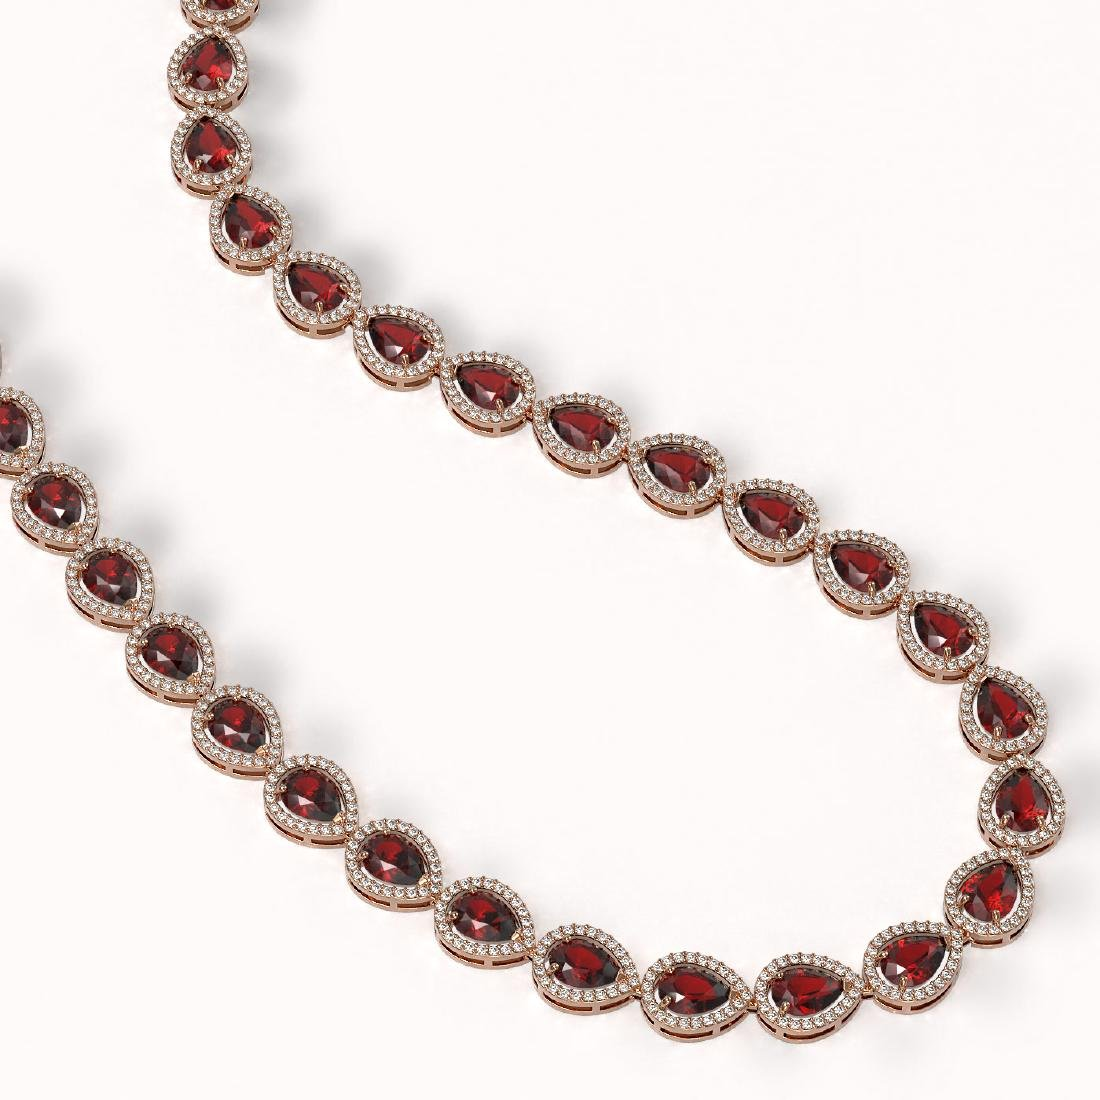 36.93 CTW Garnet & Diamond Halo Necklace 10K Rose Gold - 2